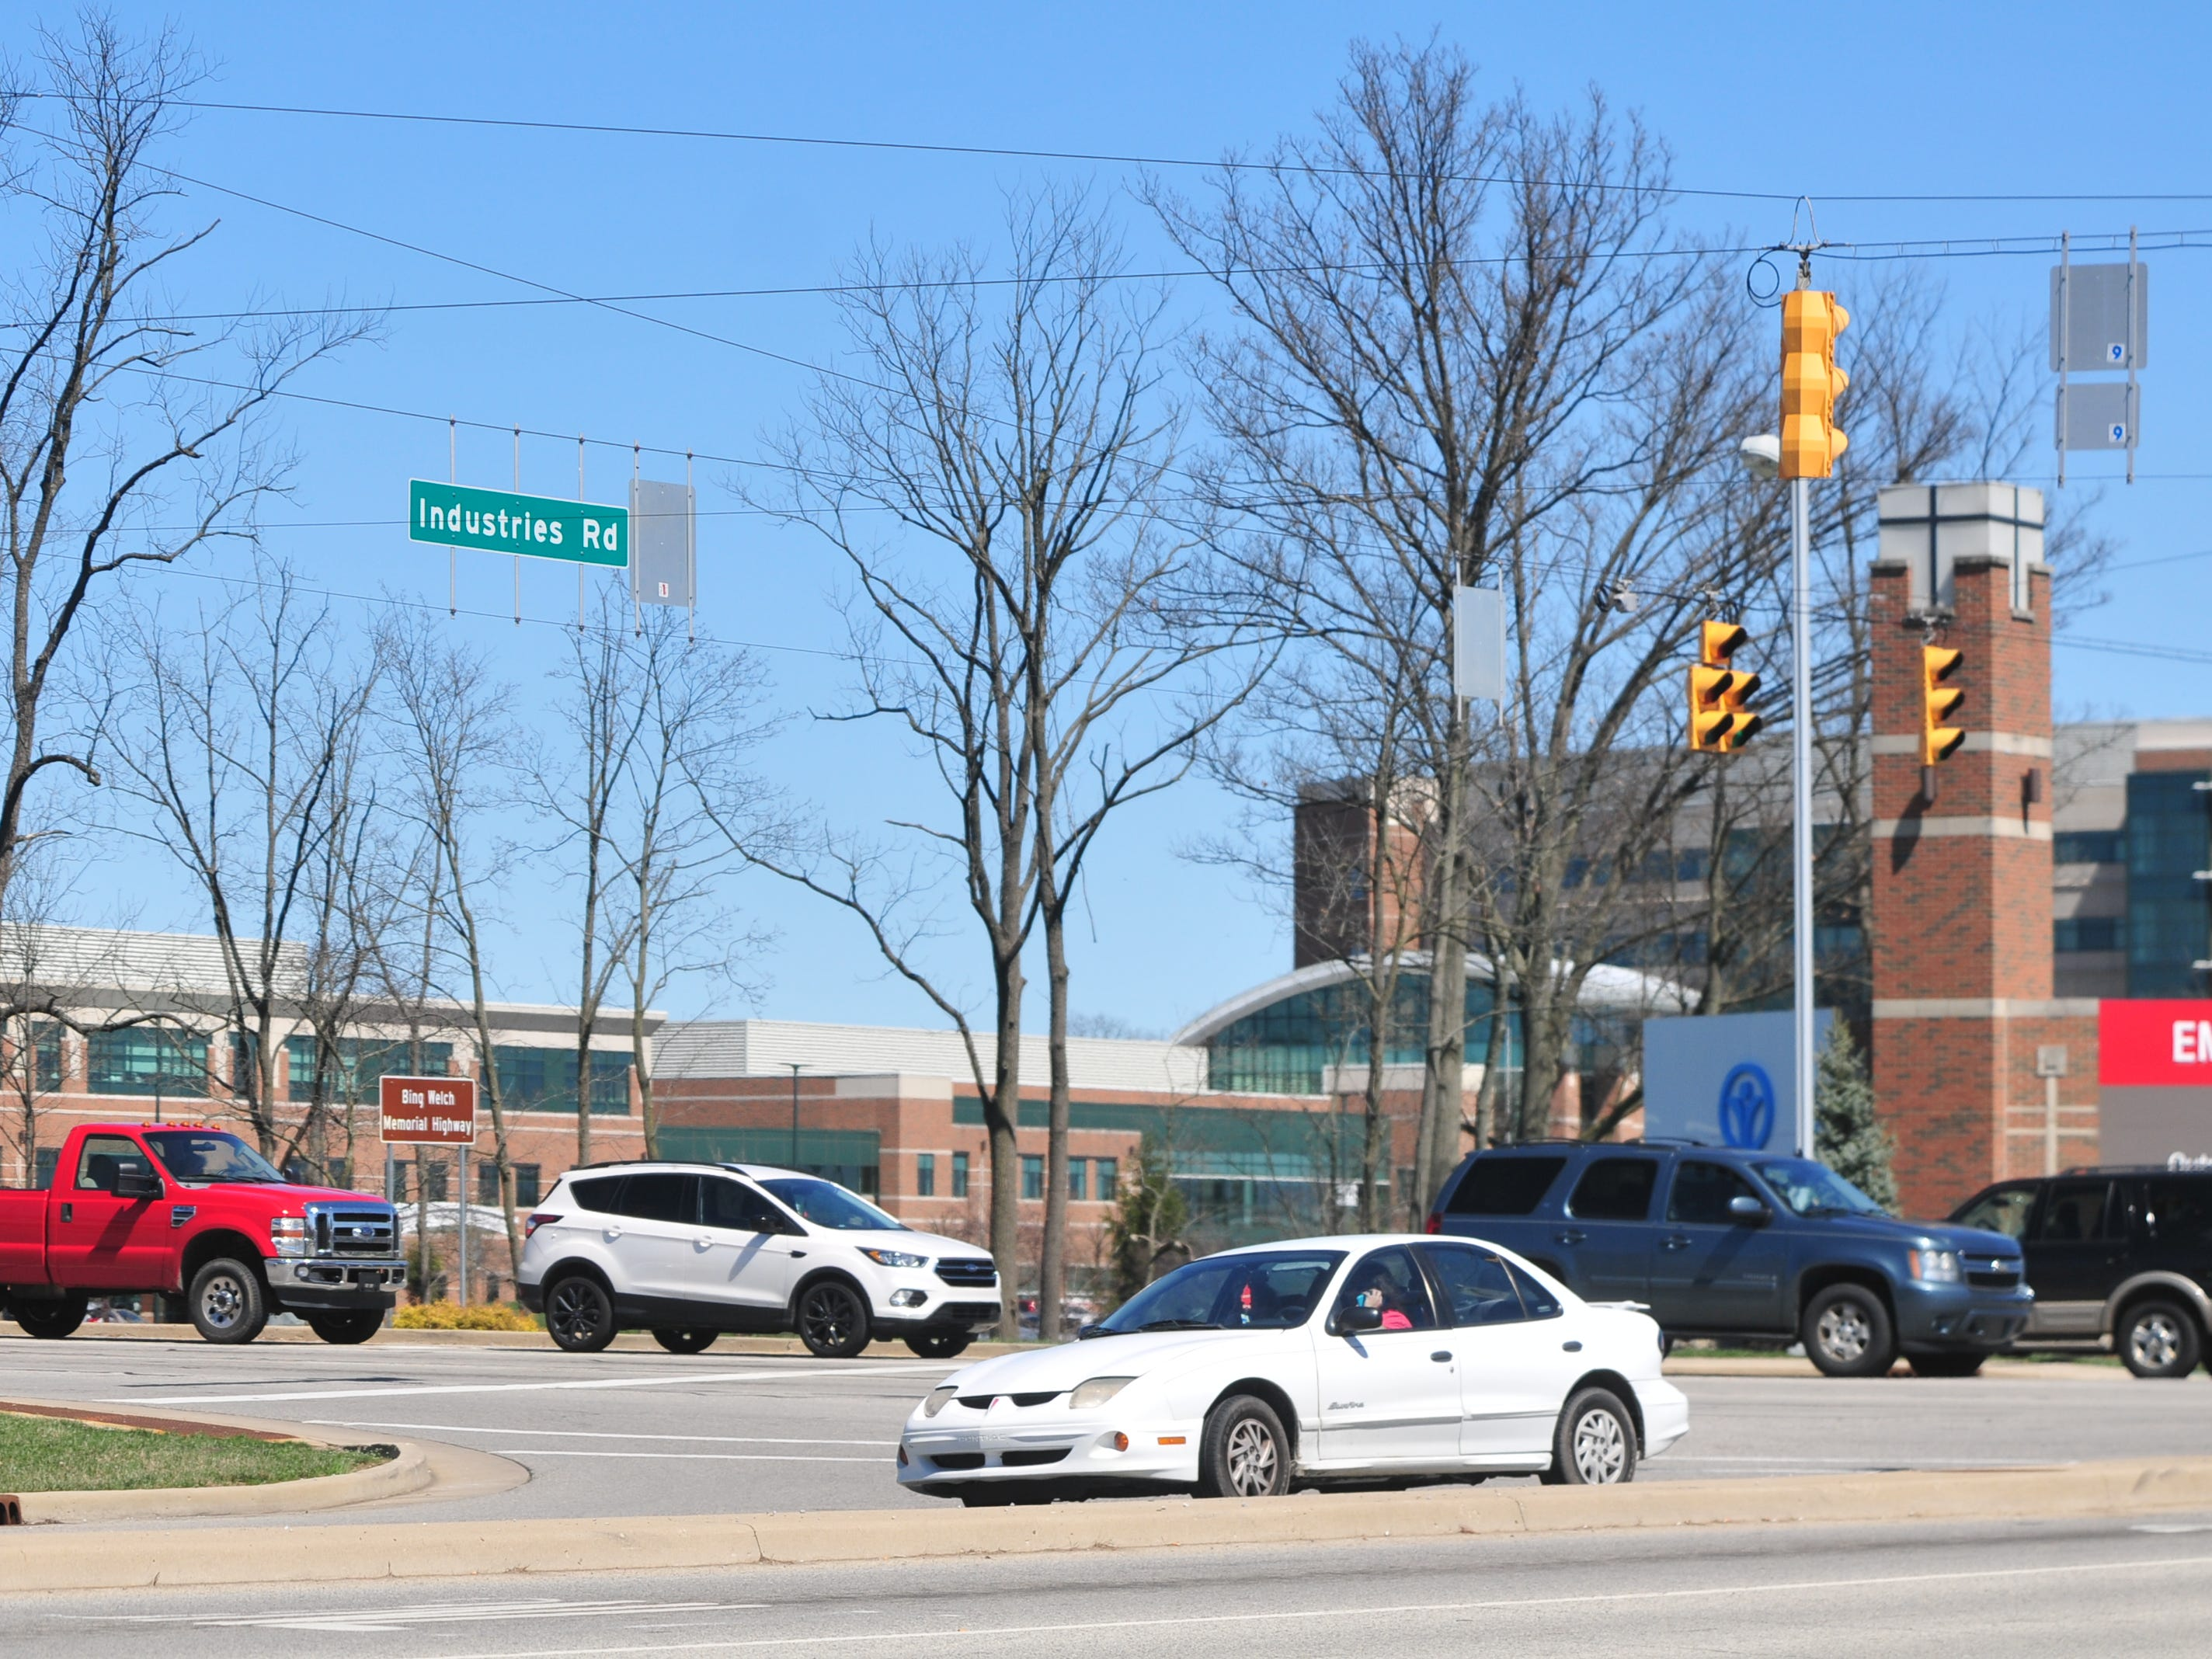 Richmond Police Department reported 12 accidents during 2018 at the intersection of Chester Boulevard and Industries Road/Reid Parkway.